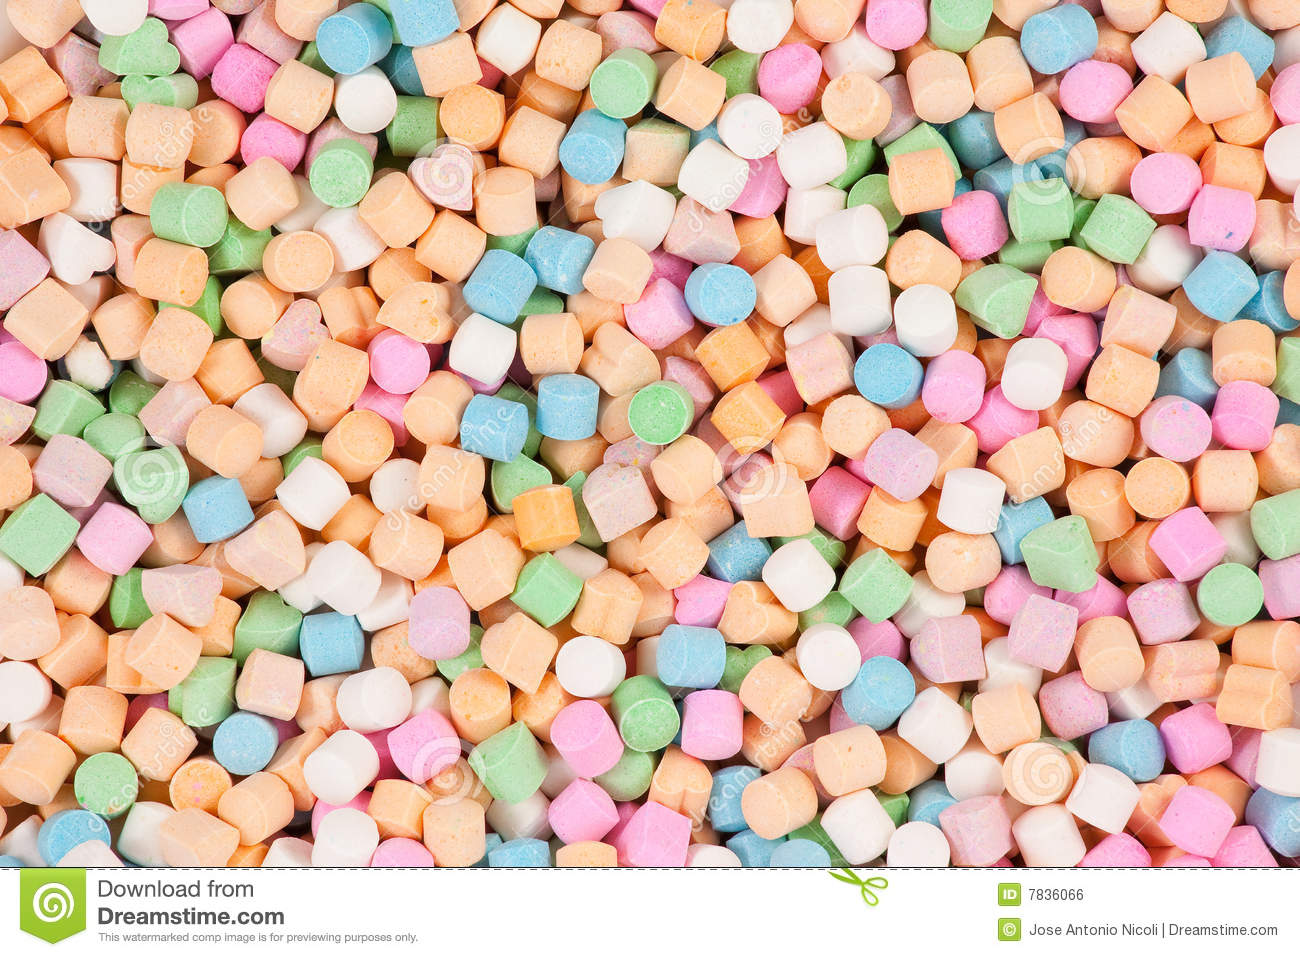 Pastel Colors pastel colors royalty free stock image - image: 7836066